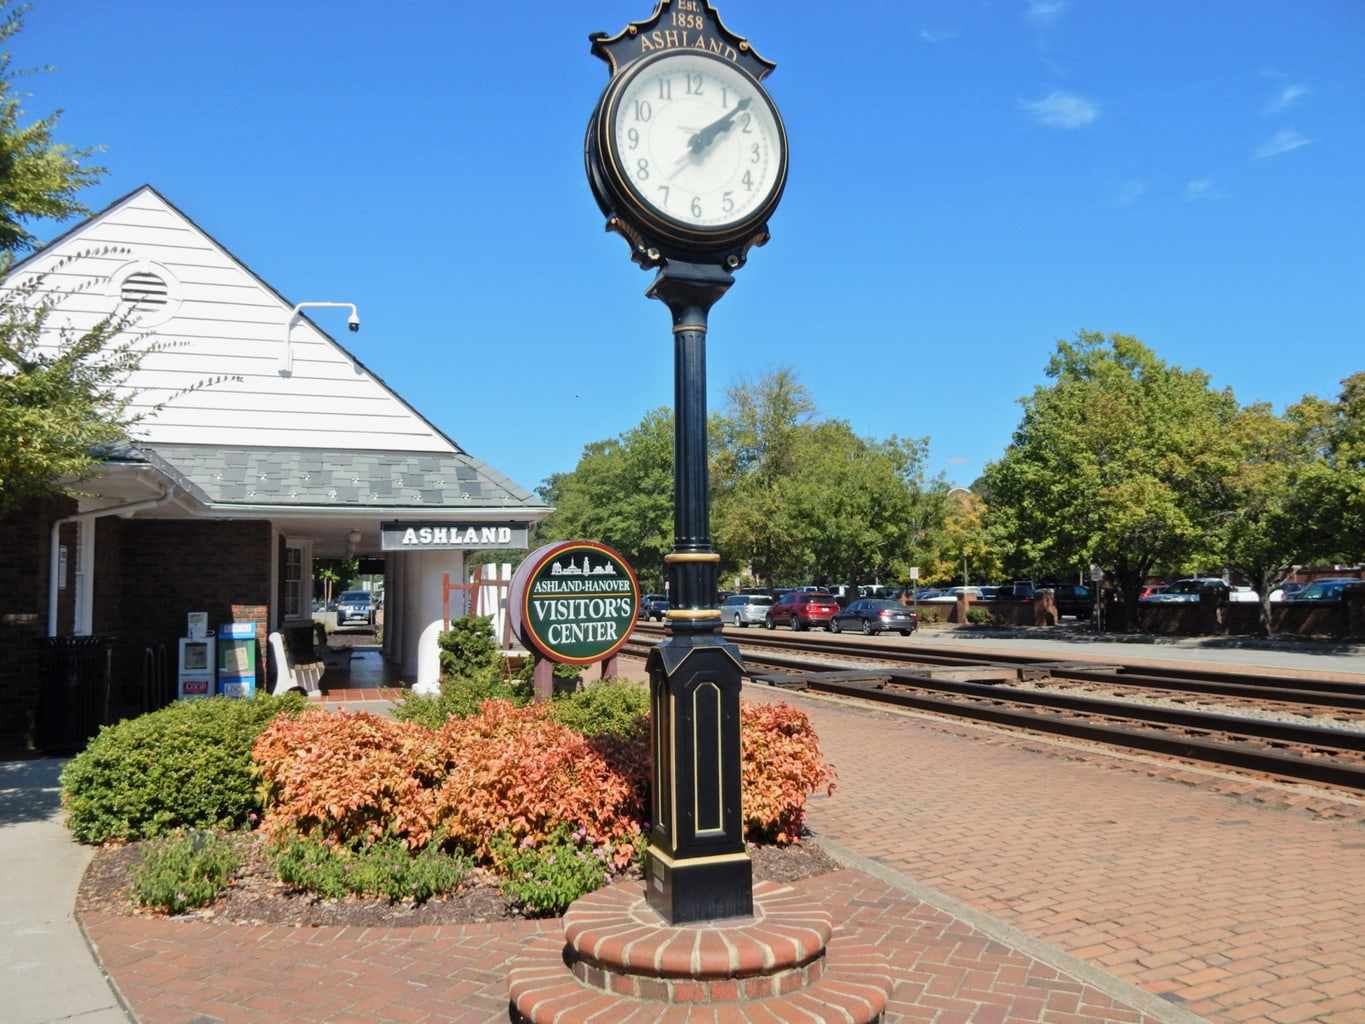 Train clock next to Ashland VA train station